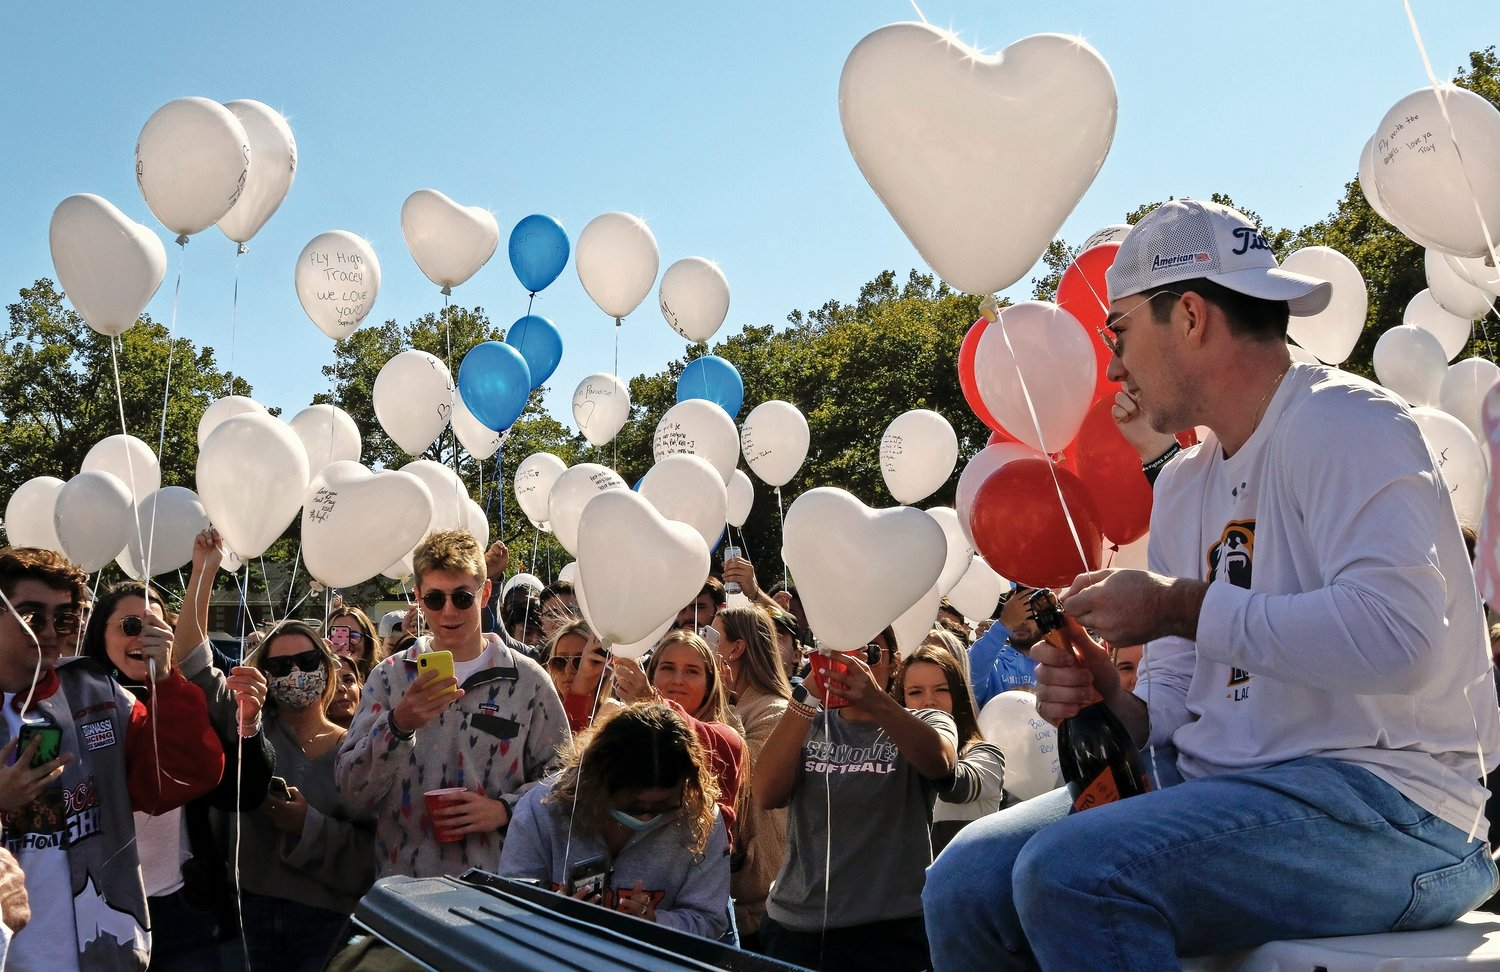 When the balloons were released last Saturday, Patrick McGrath opened a bottle of champagne and toasted his mother.